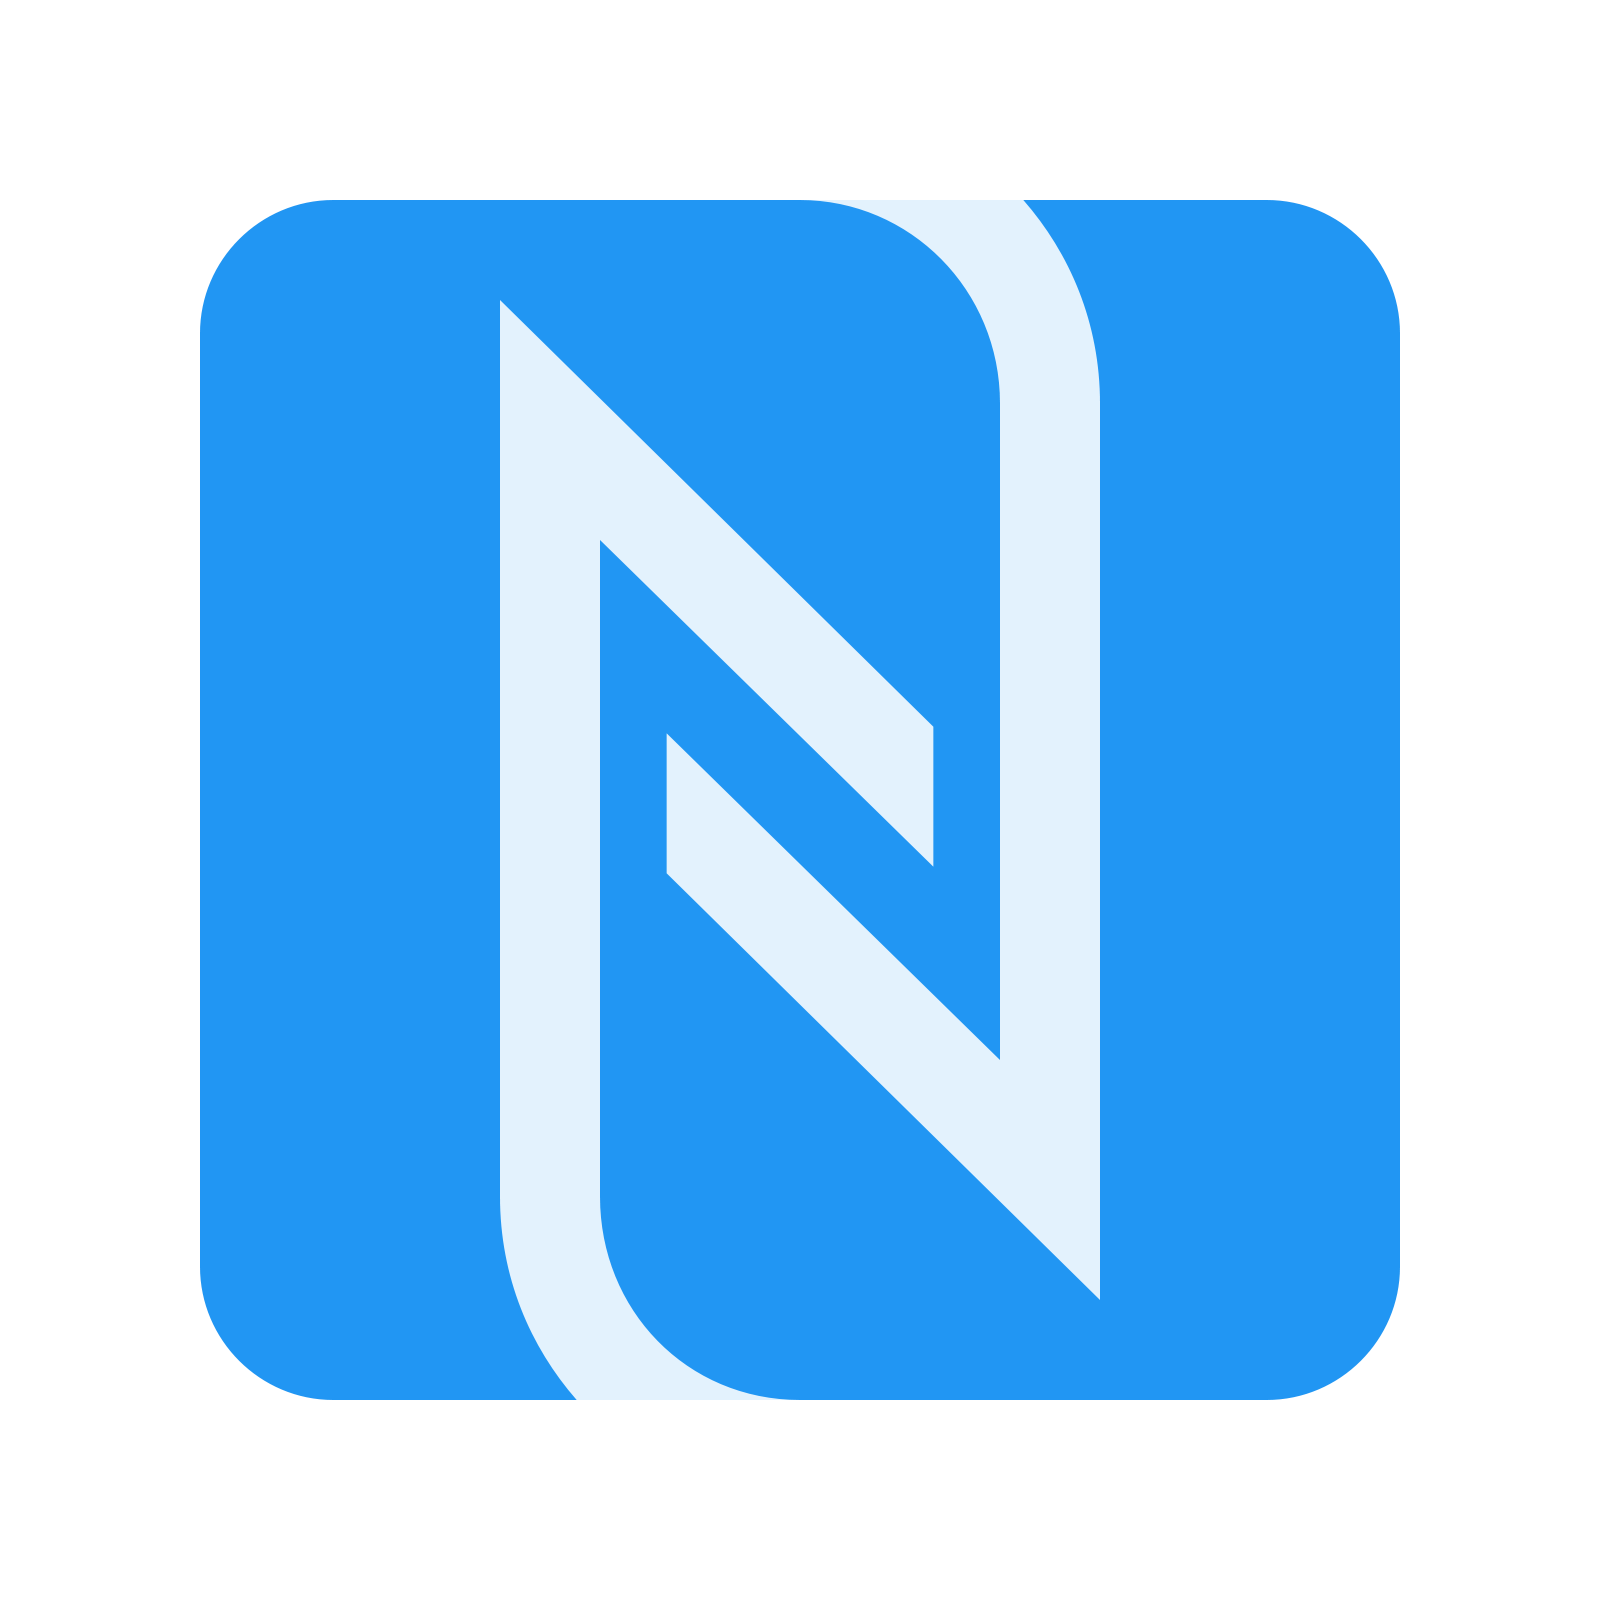 NFC Logo icon - Nfc PNG